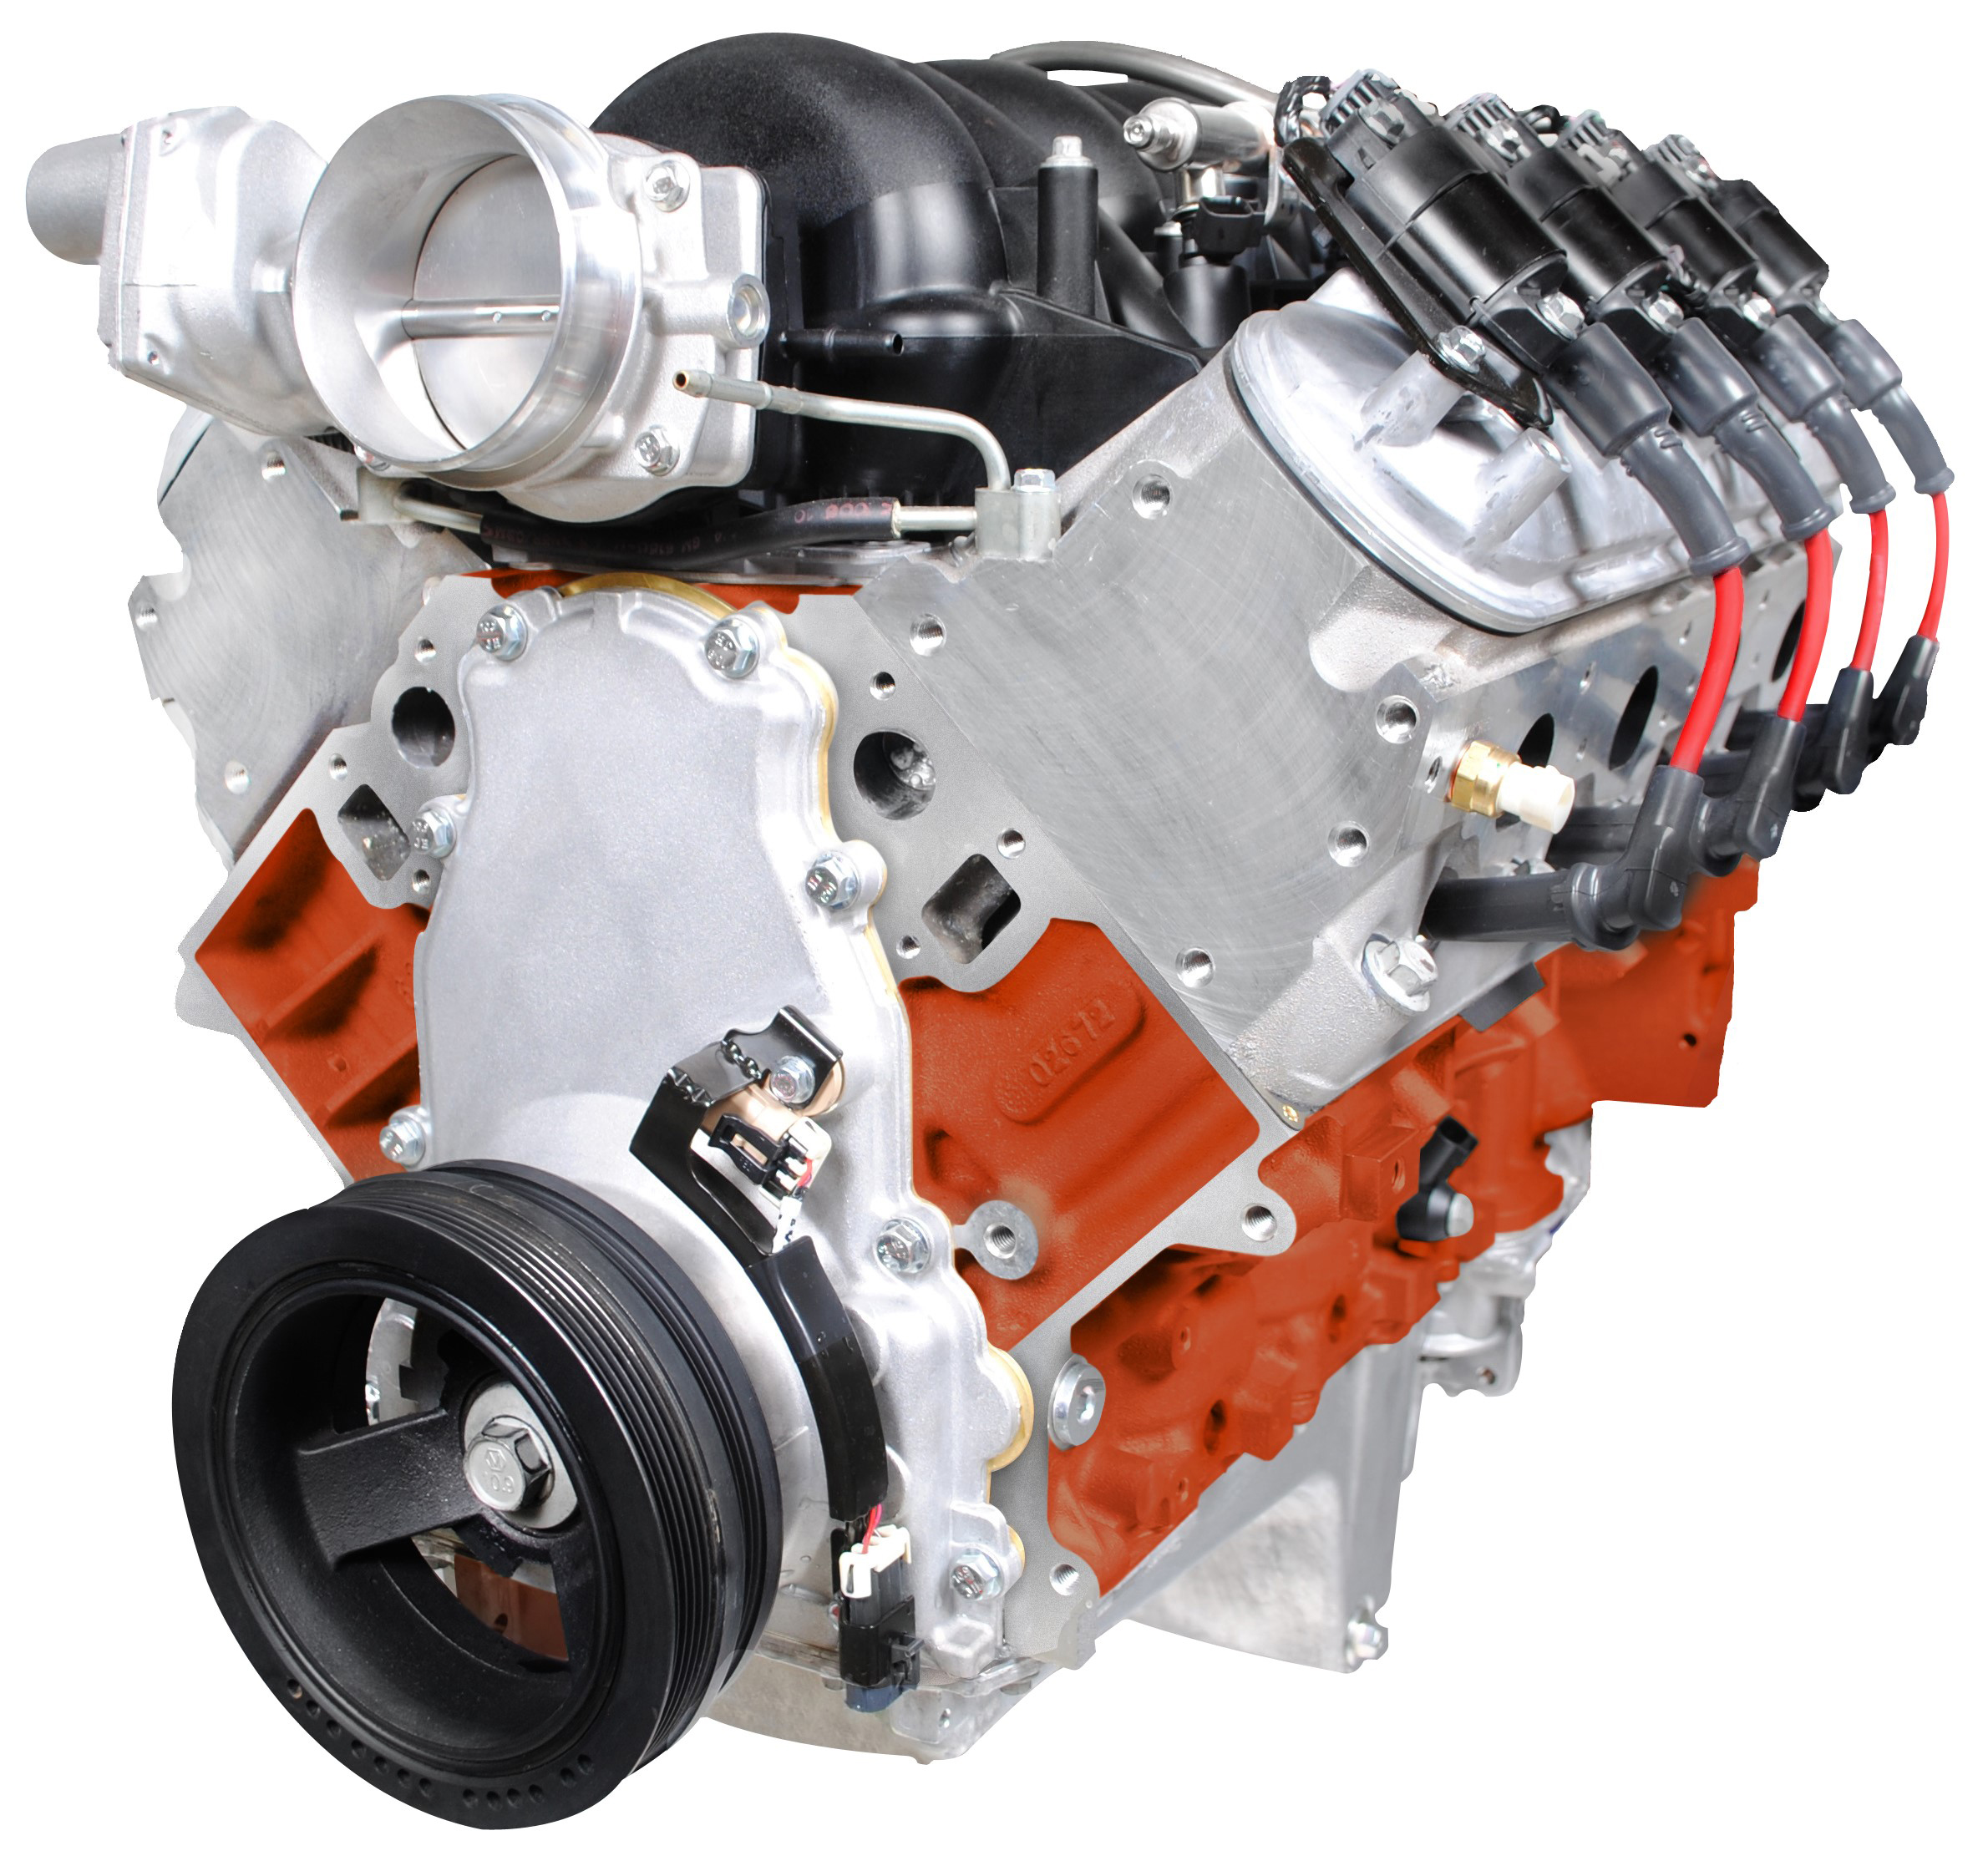 Bangshift american powertrain now offers full line of blueprint bangshift american powertrain now offers full line of blueprint crate engines malvernweather Choice Image